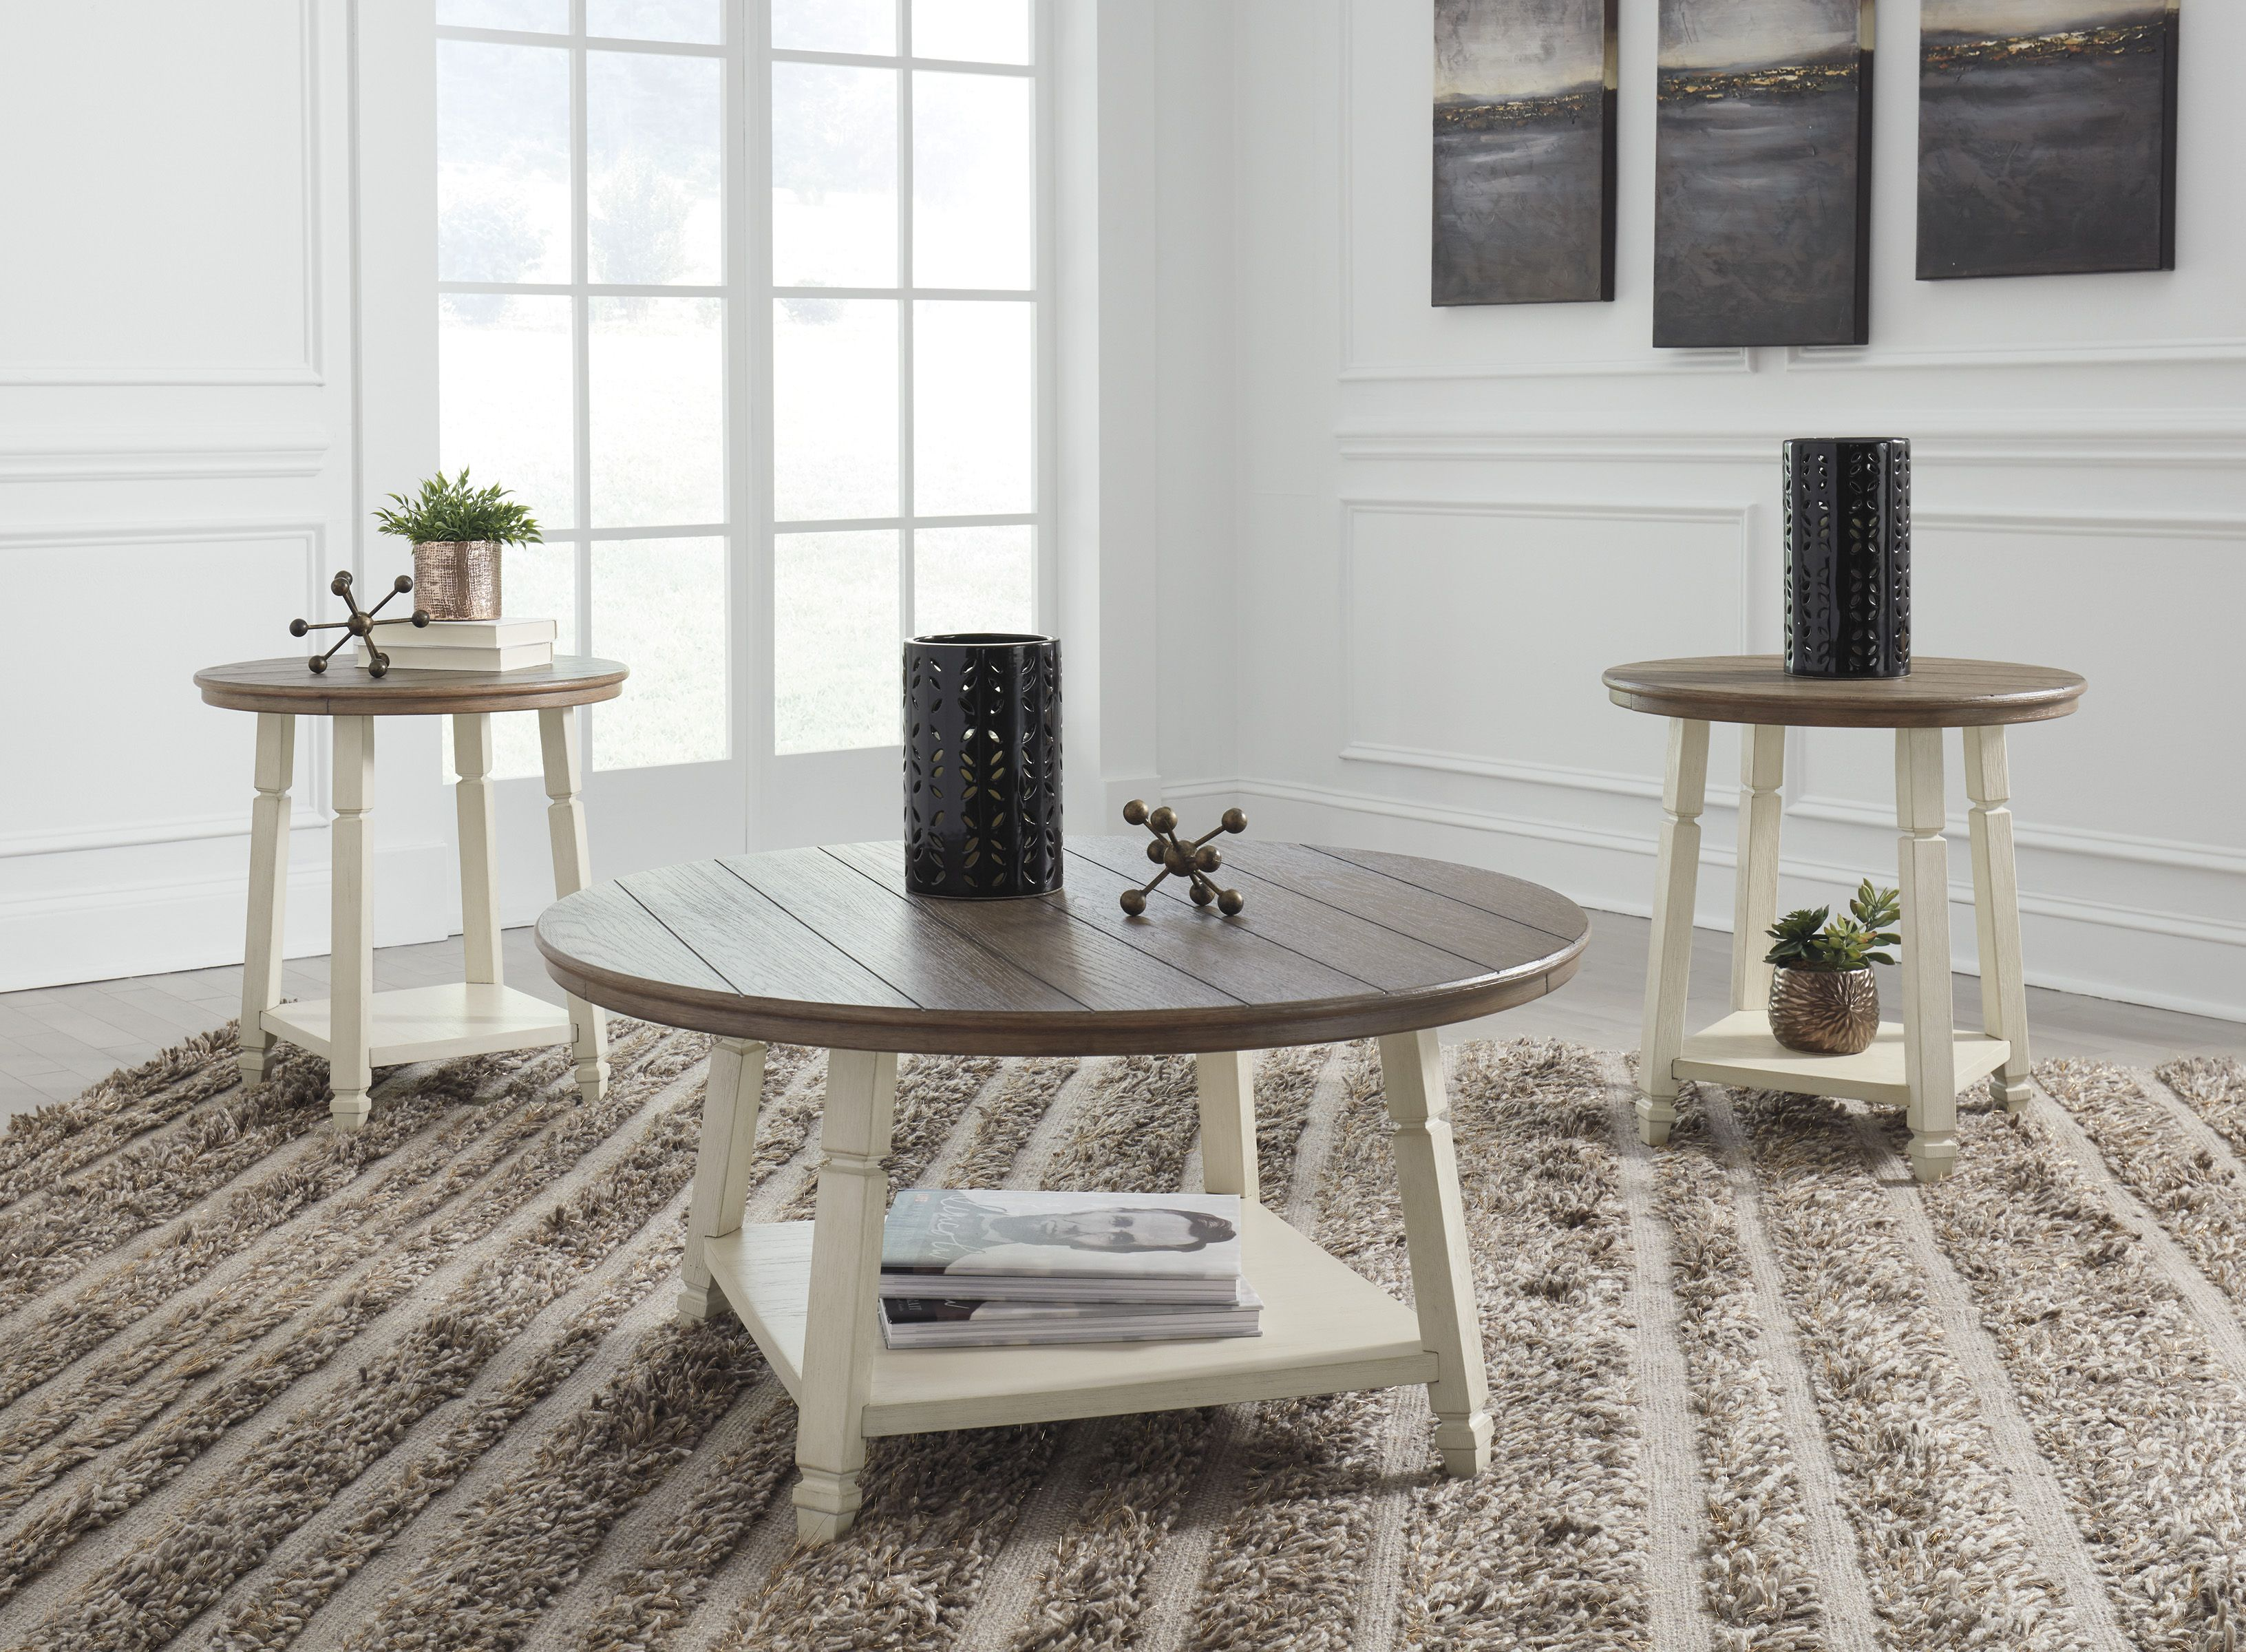 Causal Occasional Tables In 2020 Living Room Table Sets Coffee Table Living Room Table #round #end #table #for #living #room